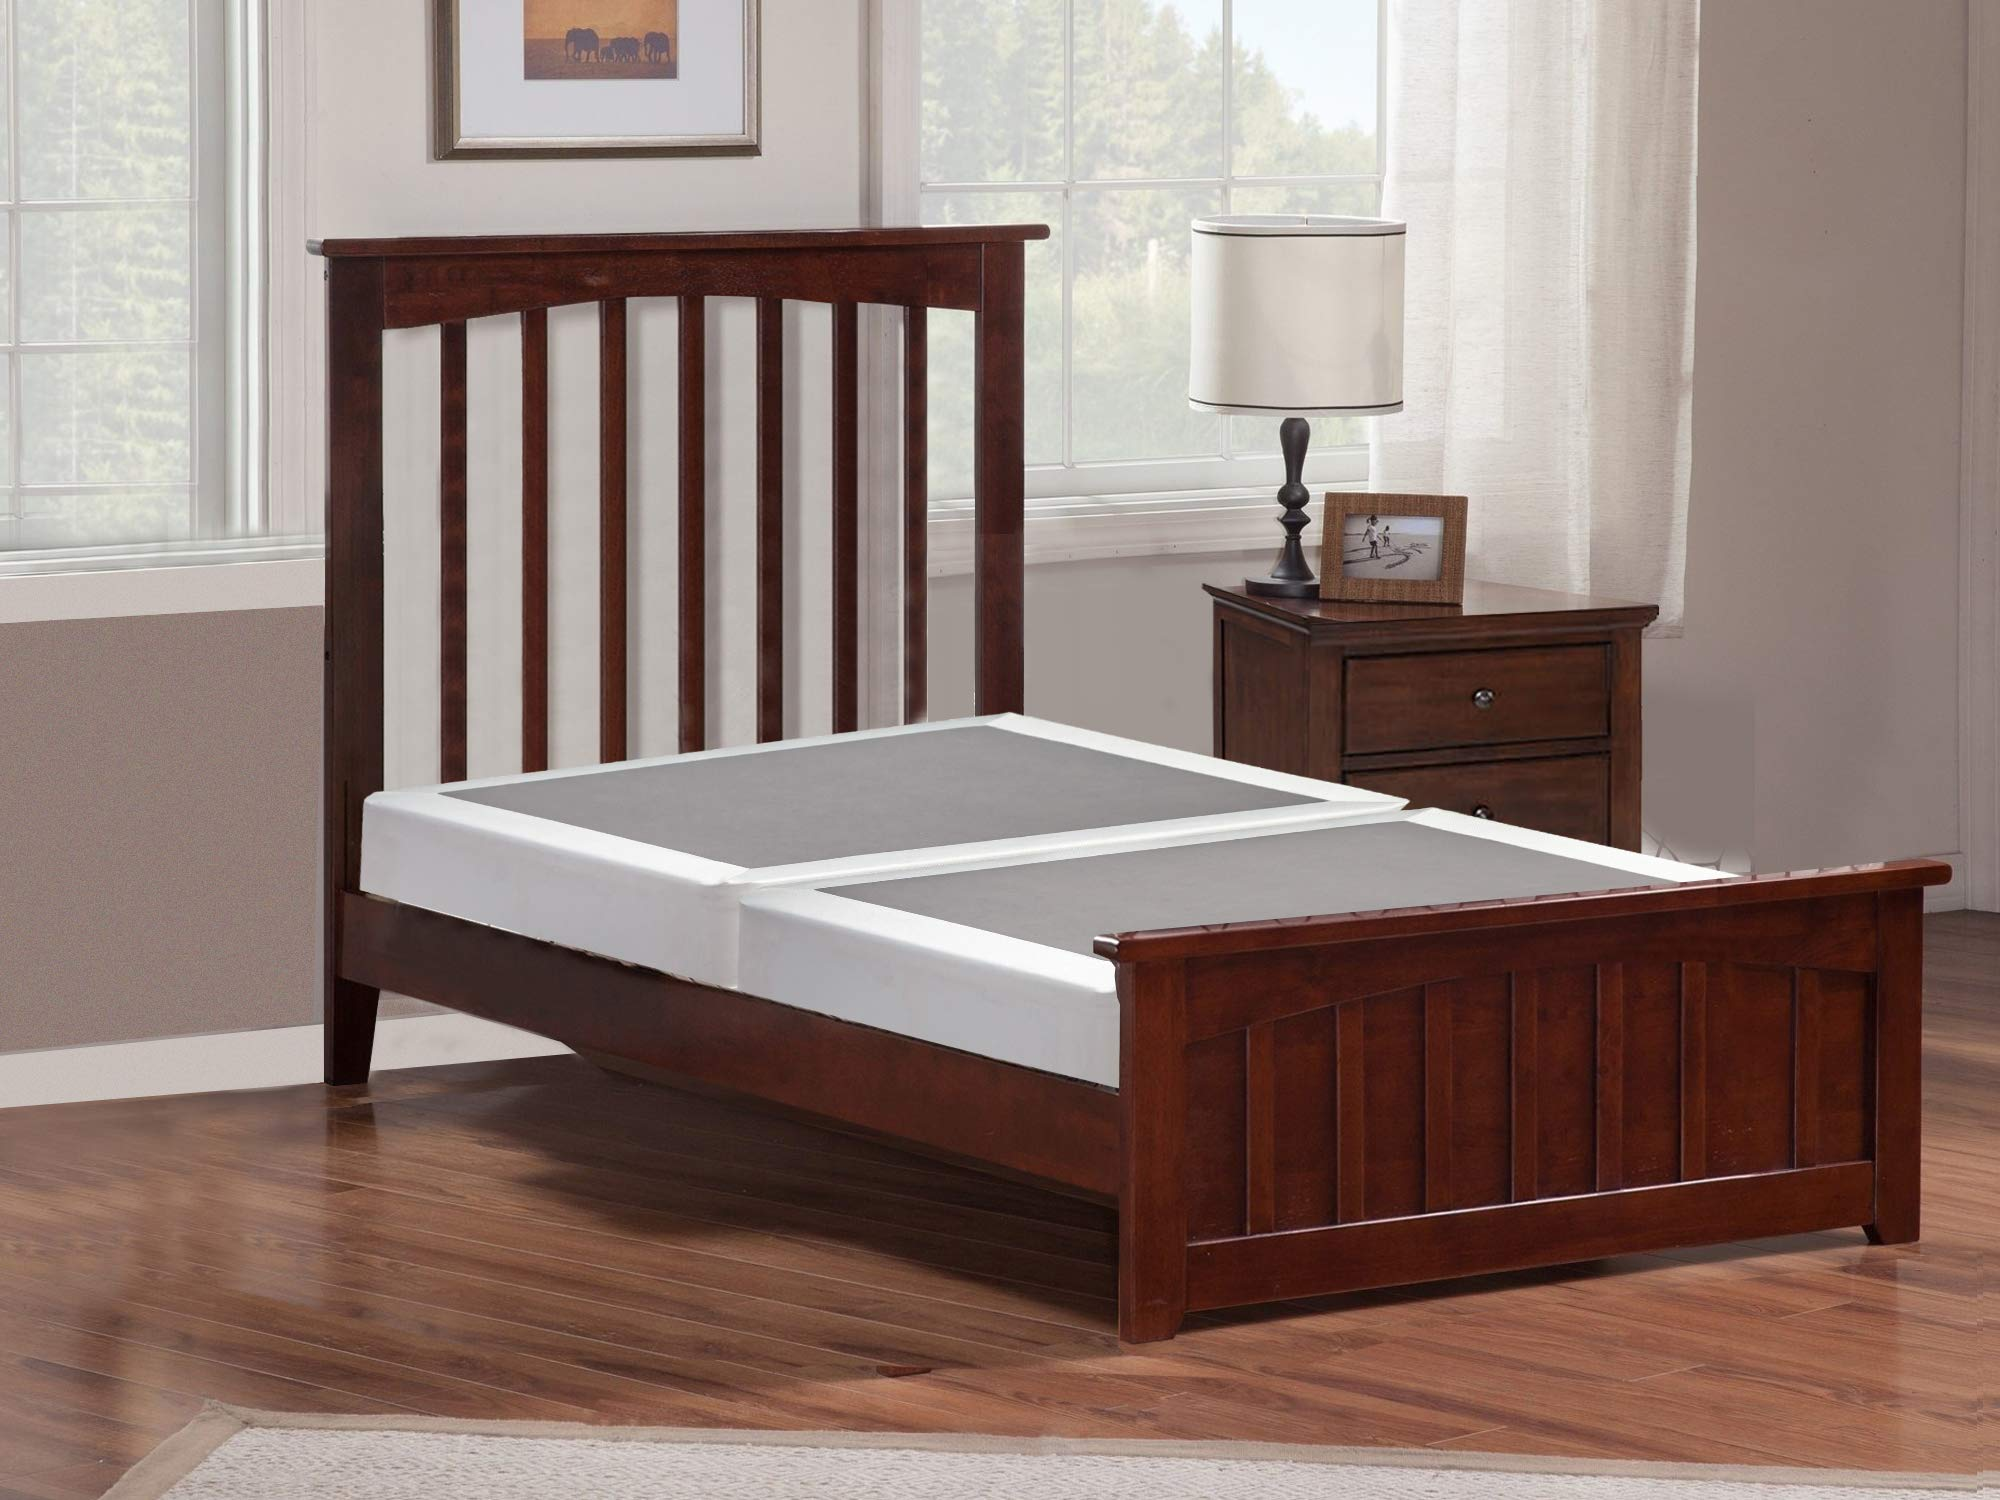 Mayton 4-Inch Twin Size Split Box Spring Low Profile Mattress Foundation/Strong Structure, 38x74 by Mayton